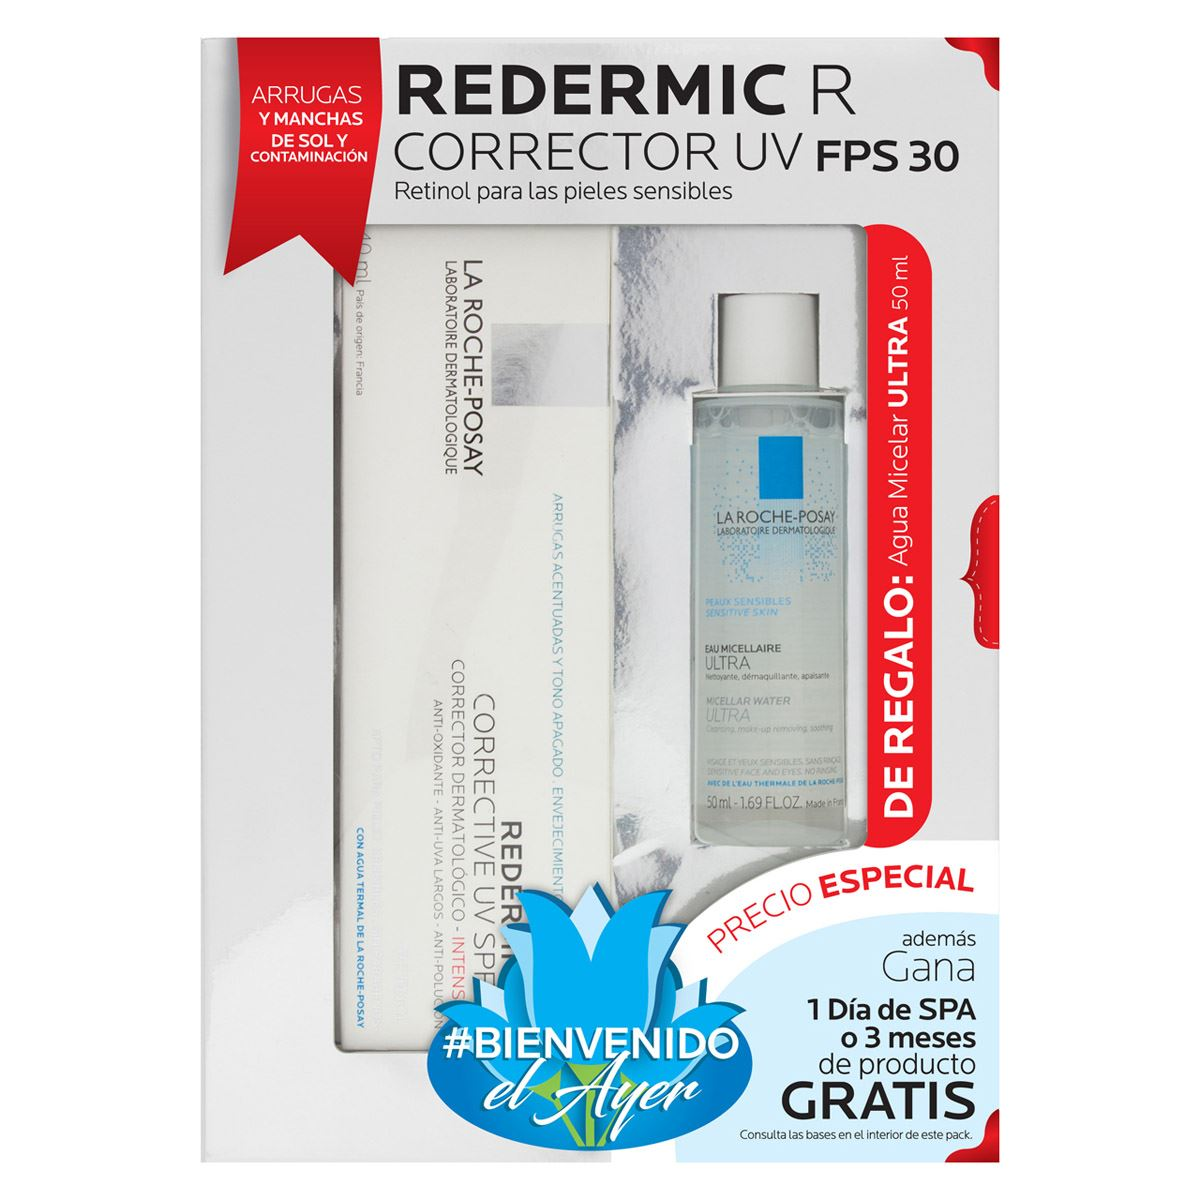 Pack Redermic R Uv con Fps 30 + Agua Micelar de 50 ml de Regalo